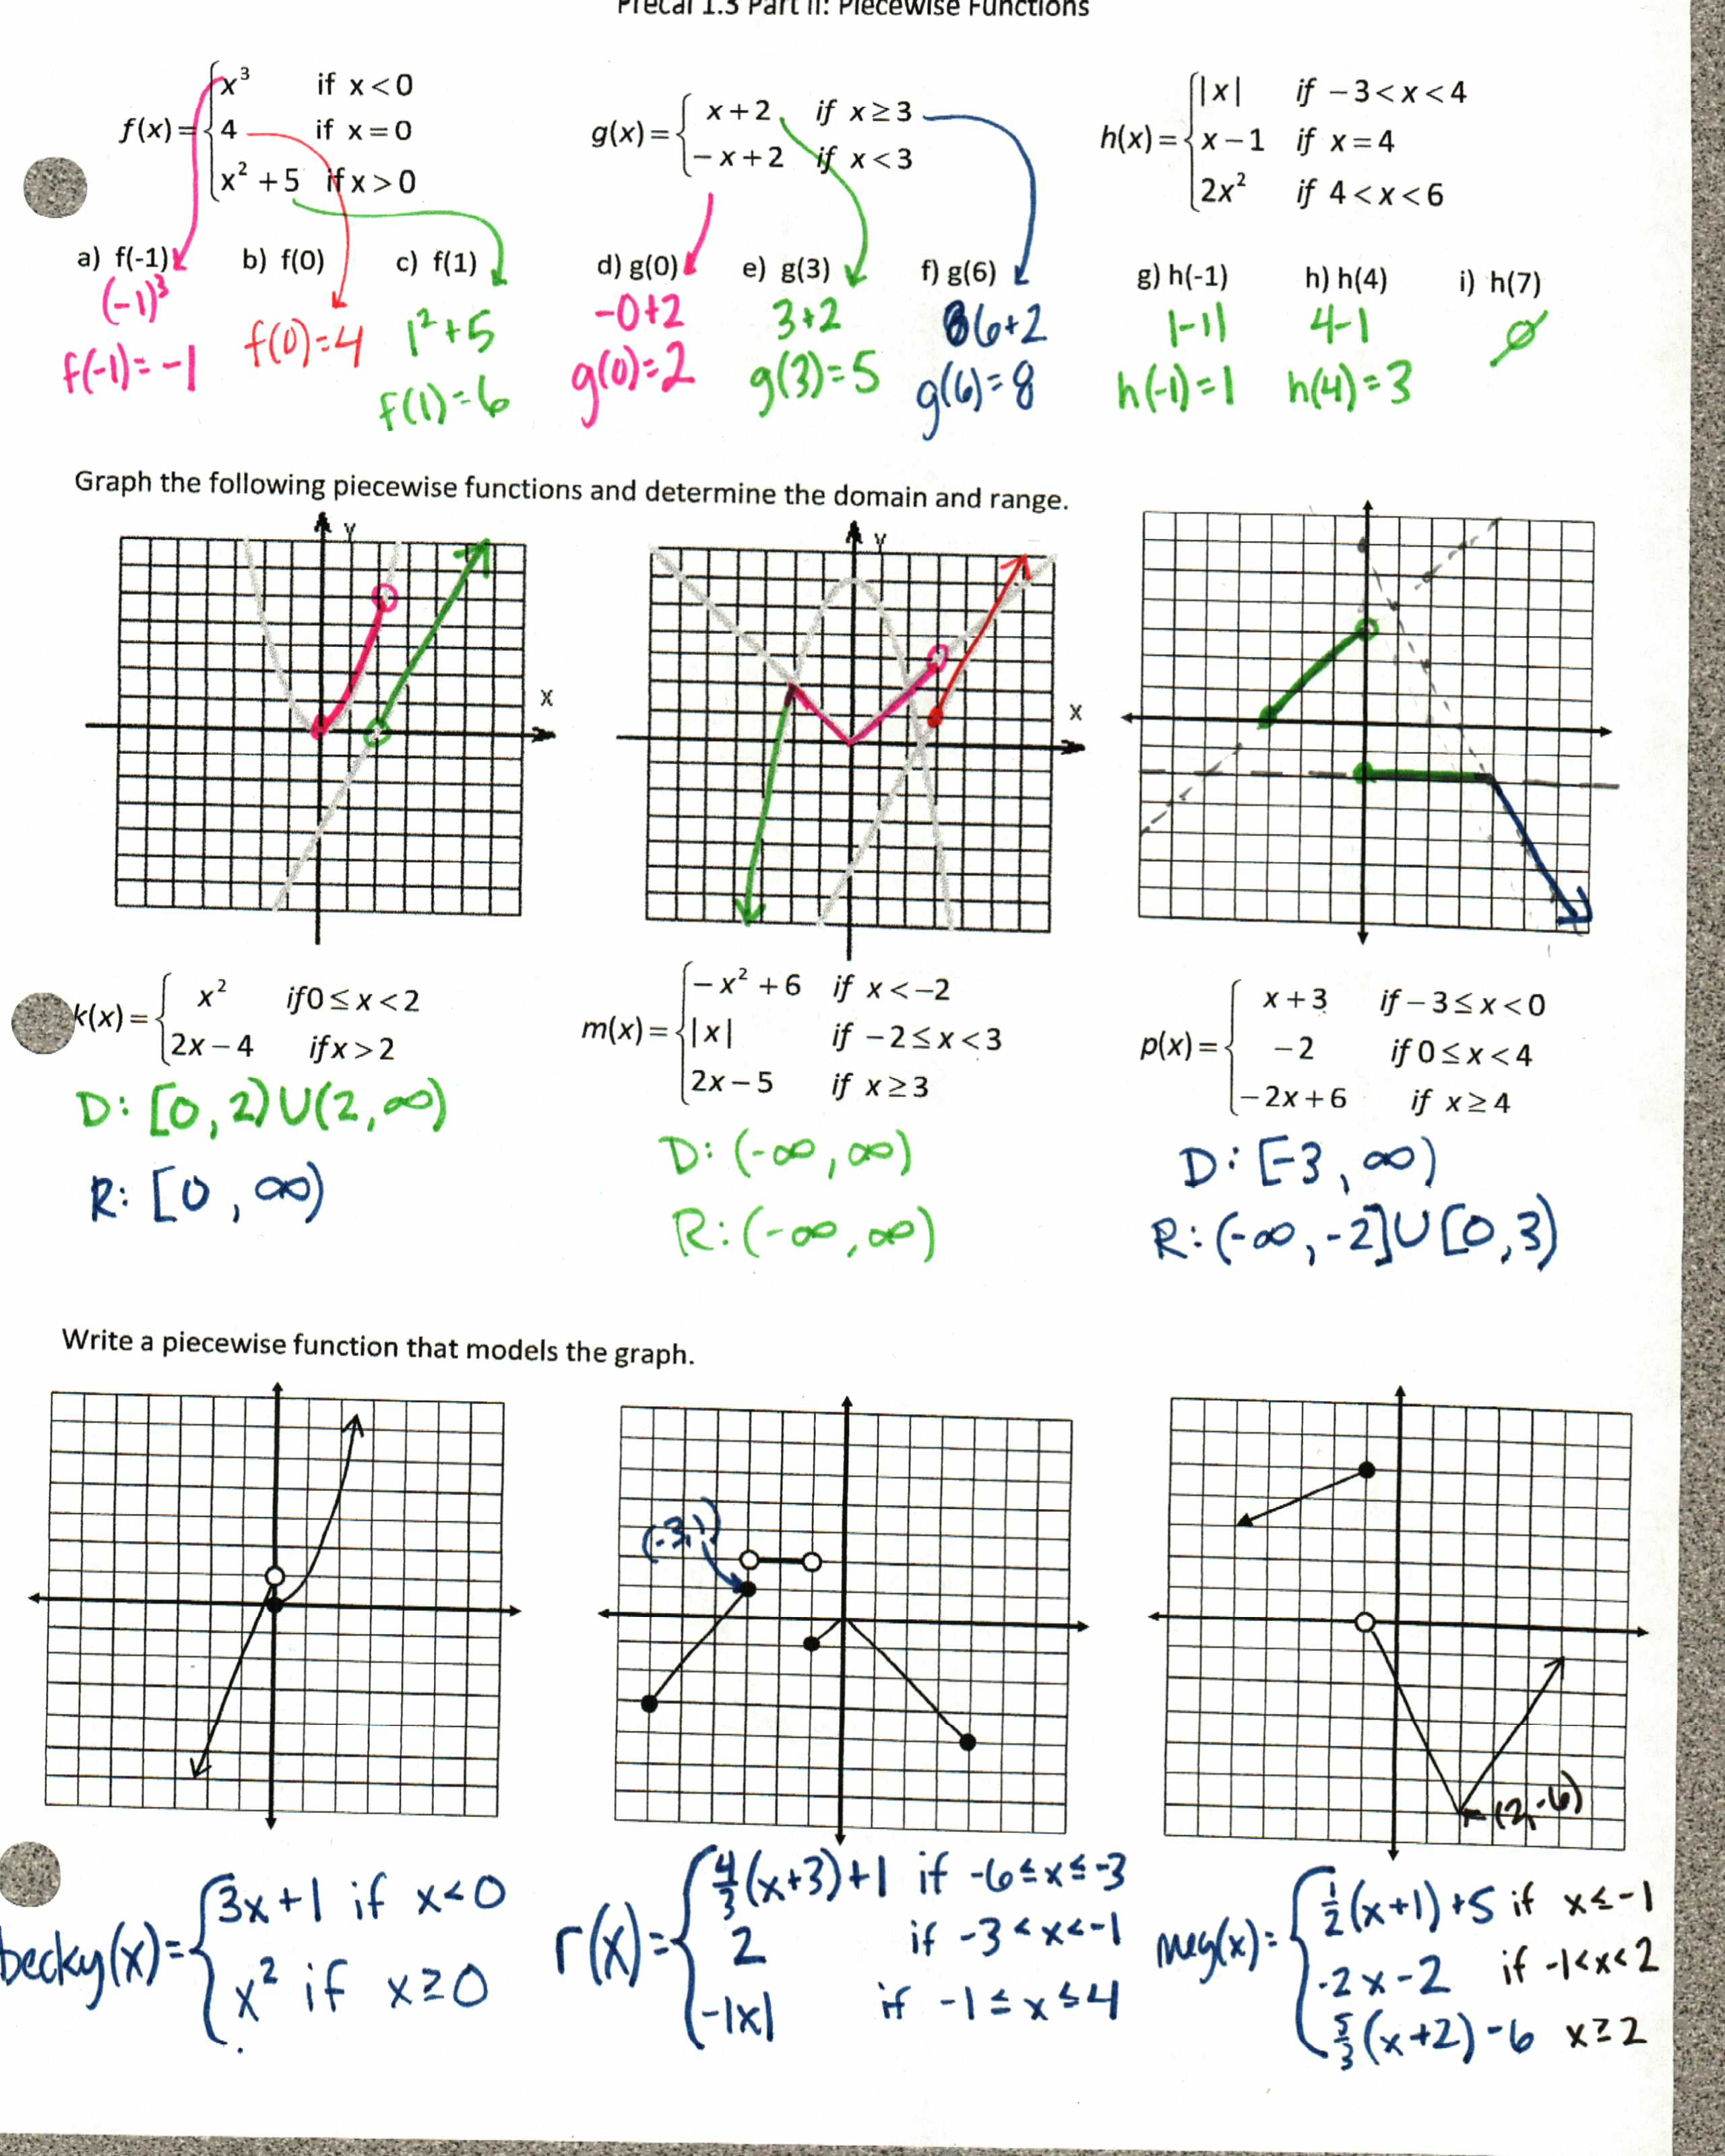 Free Worksheet Graphing Quadratic Functions Worksheet Answers functions insert clever math pun here from megcraig org